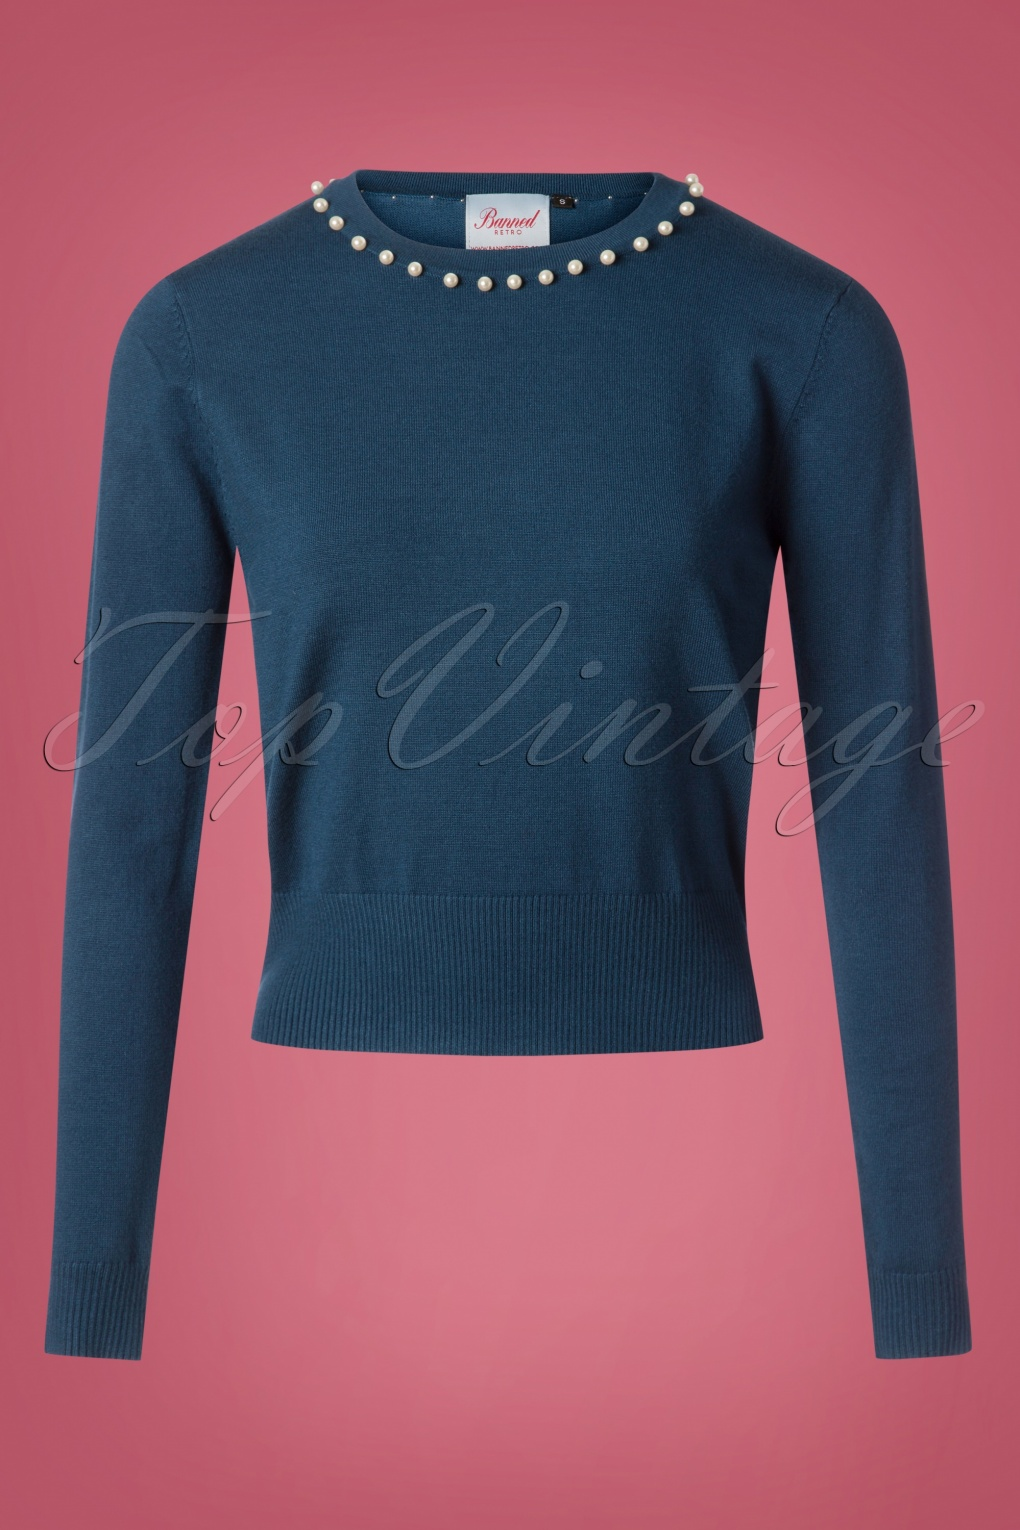 Vintage Sweaters: Cable Knit, Fair Isle Cardigans & Sweaters 50s Pearl Bow Jumper in Blue £32.40 AT vintagedancer.com